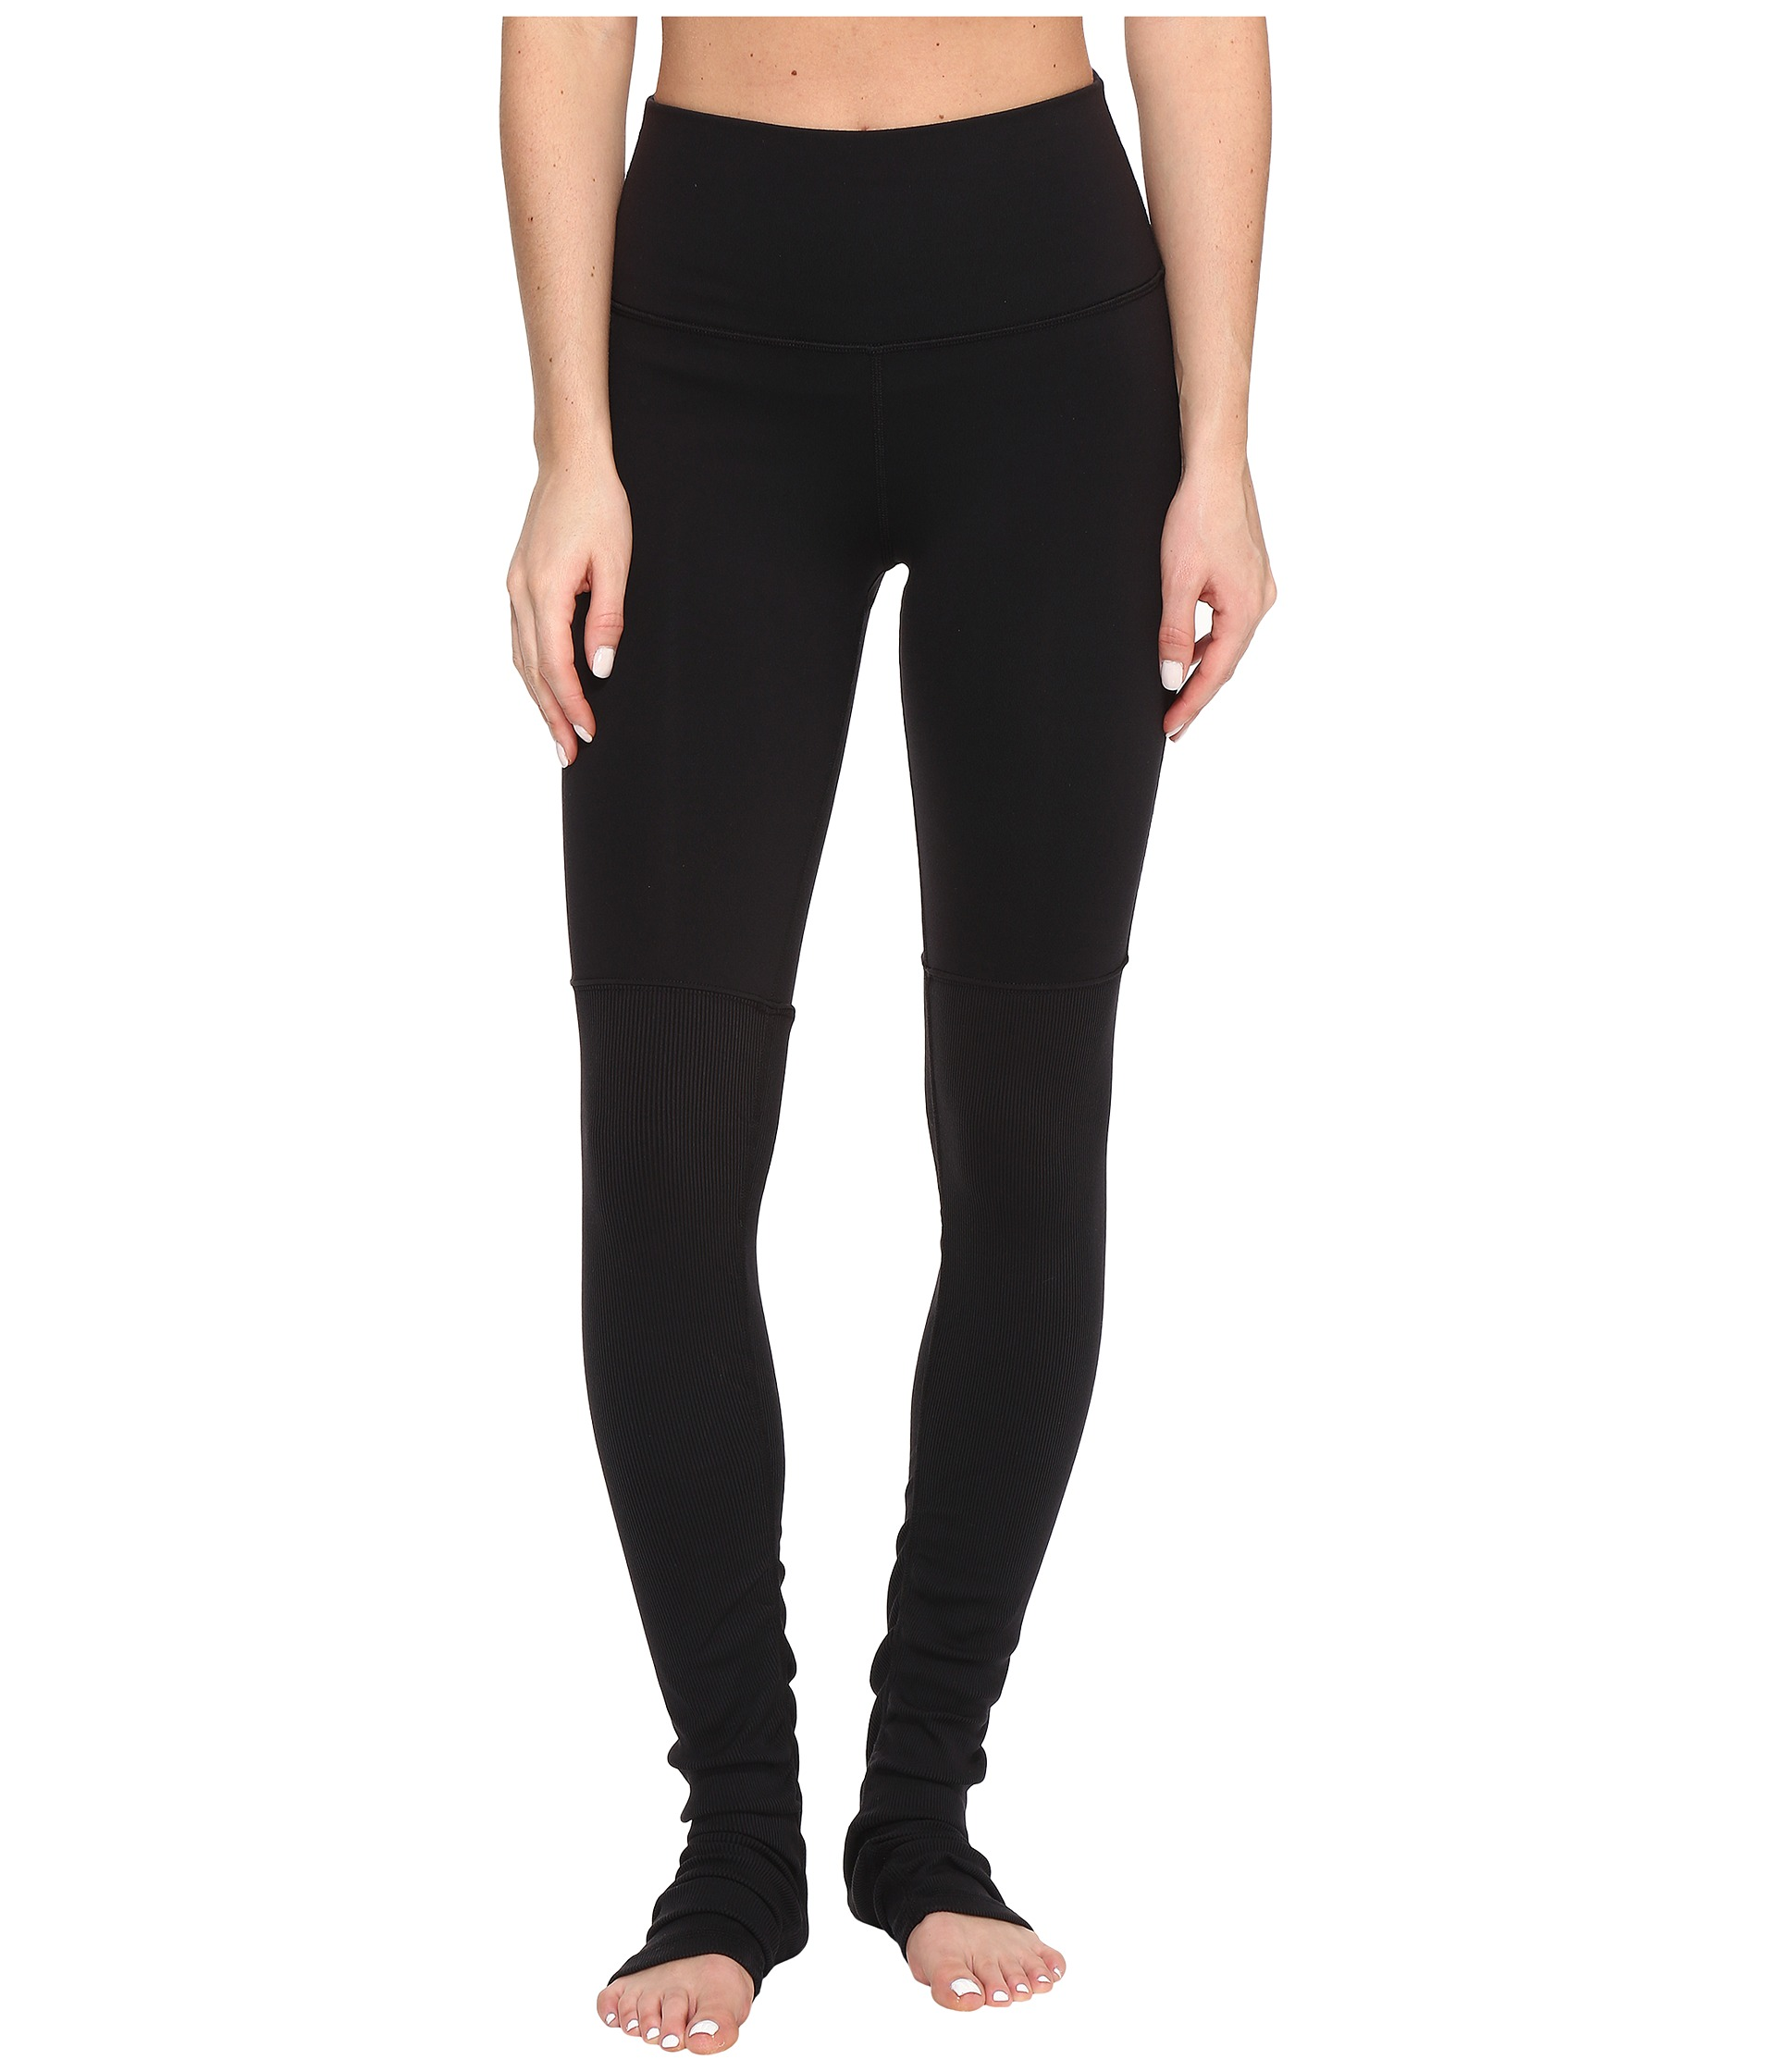 Yoga Pants, Pants, Yoga | Shipped Free at Zappos